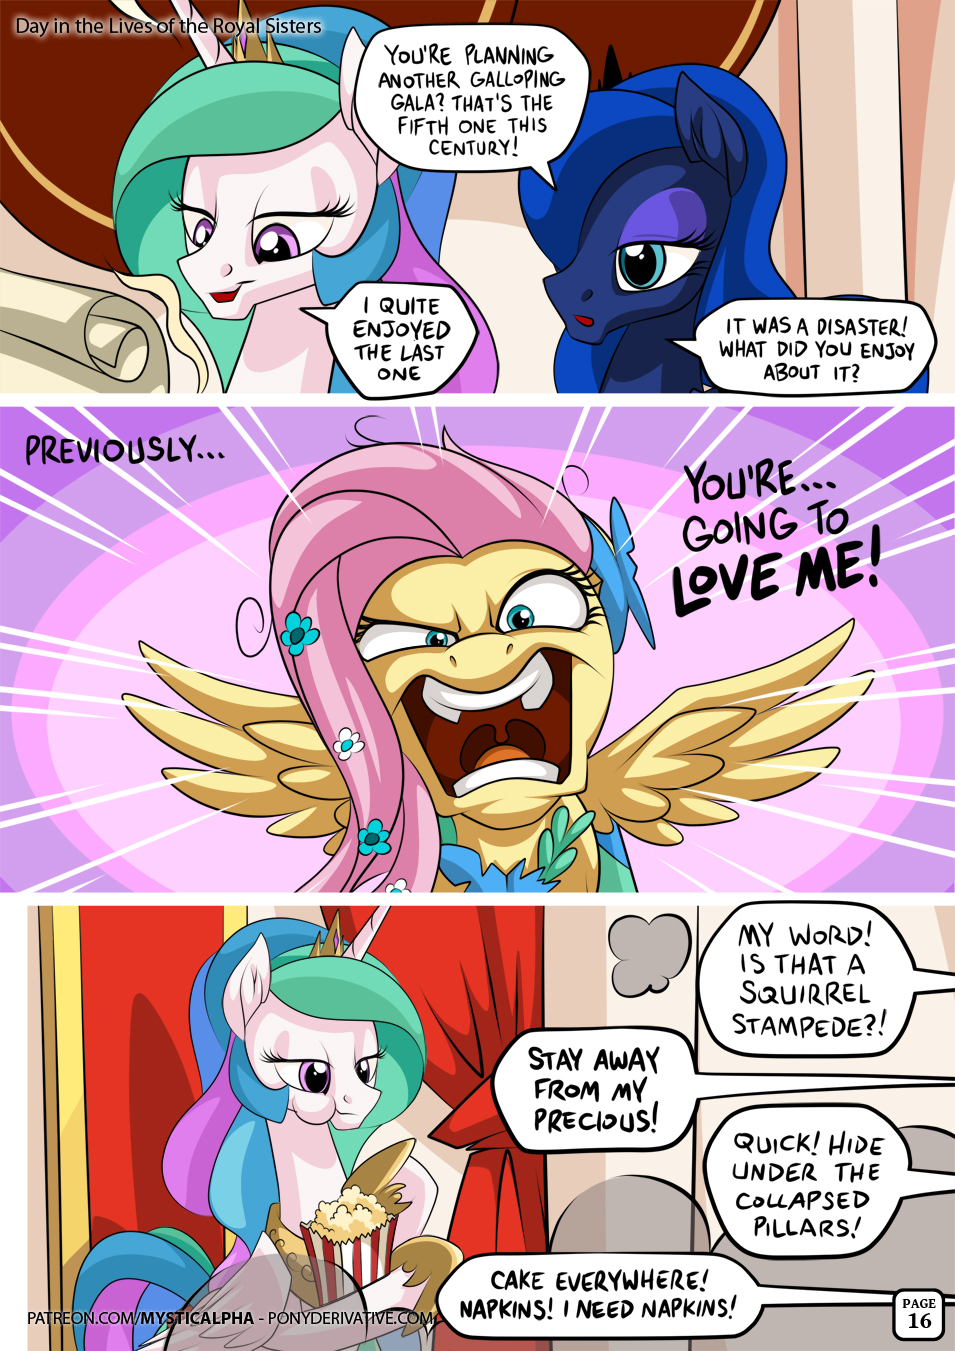 Day in the Lives of the Royal Sisters 16 by mysticalpha